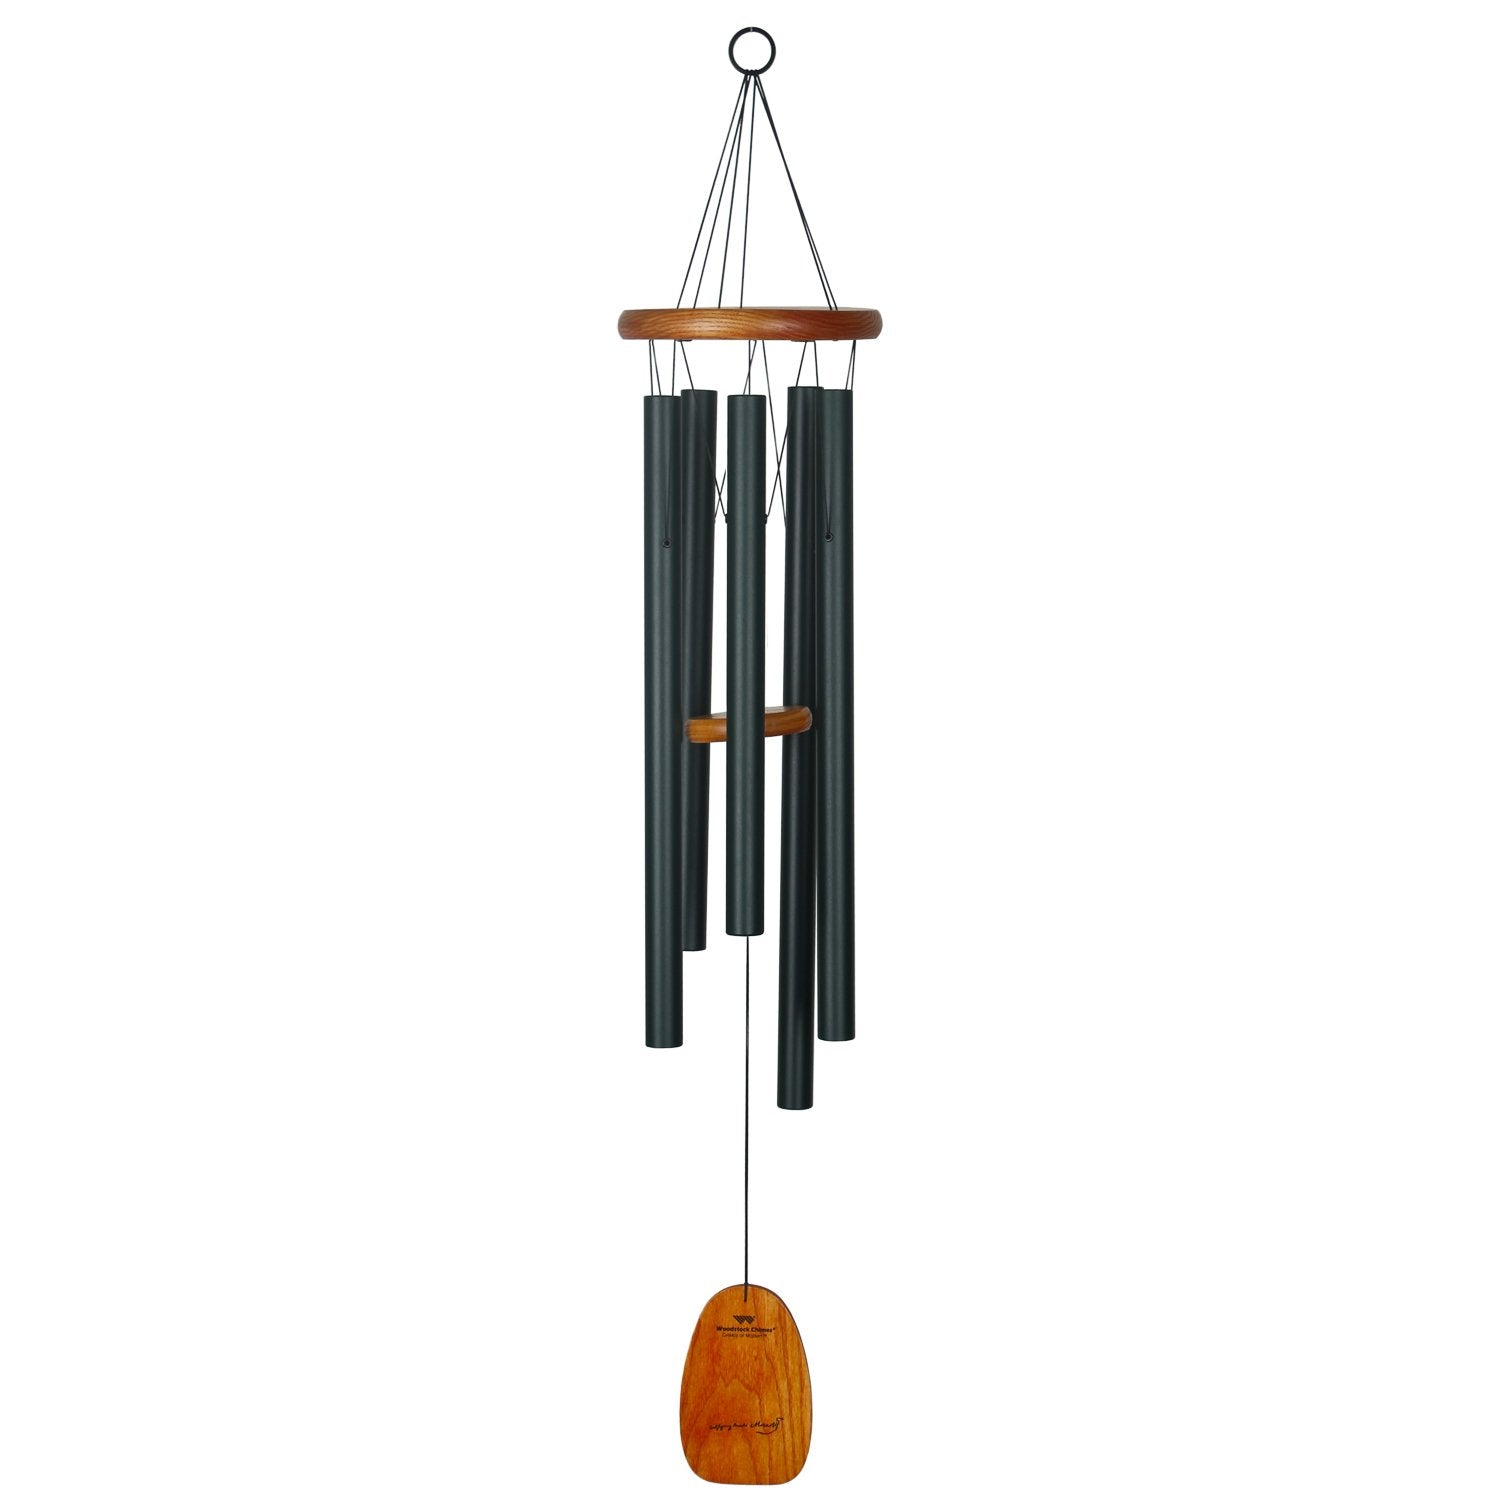 Chimes of Mozart - Large full product image